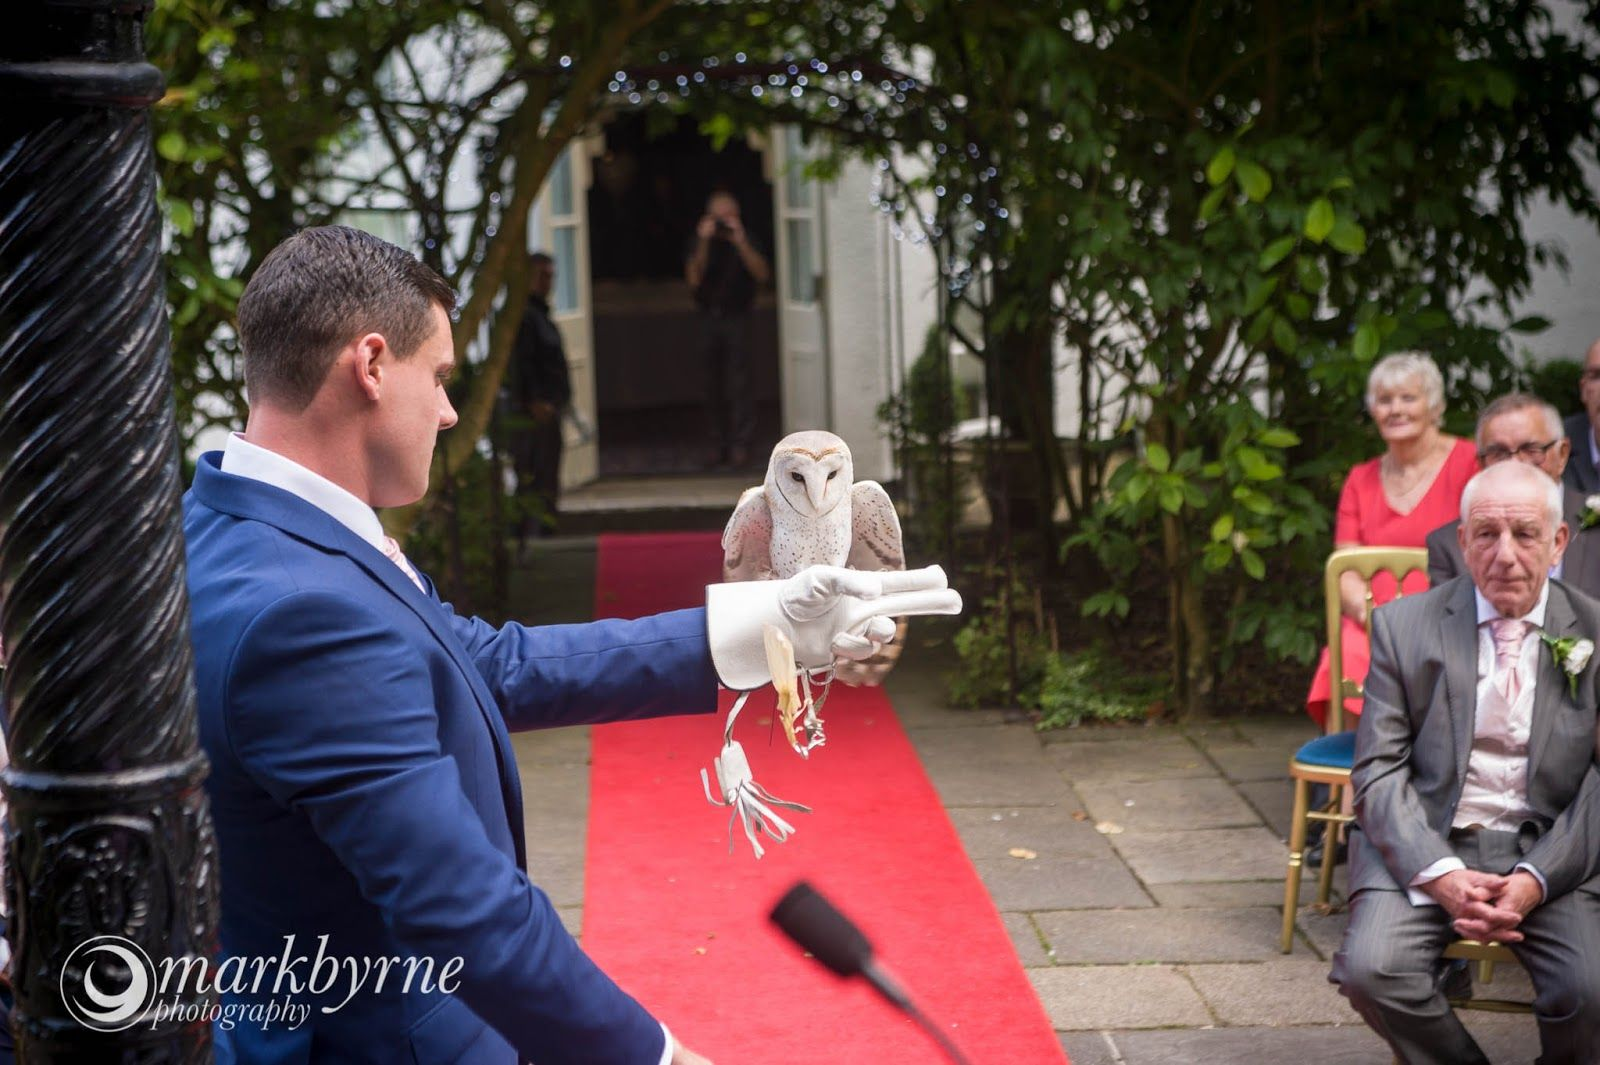 Statham Lodge wedding of Leanne and Jak including the super awesome delivery of wedding rings by an owl.